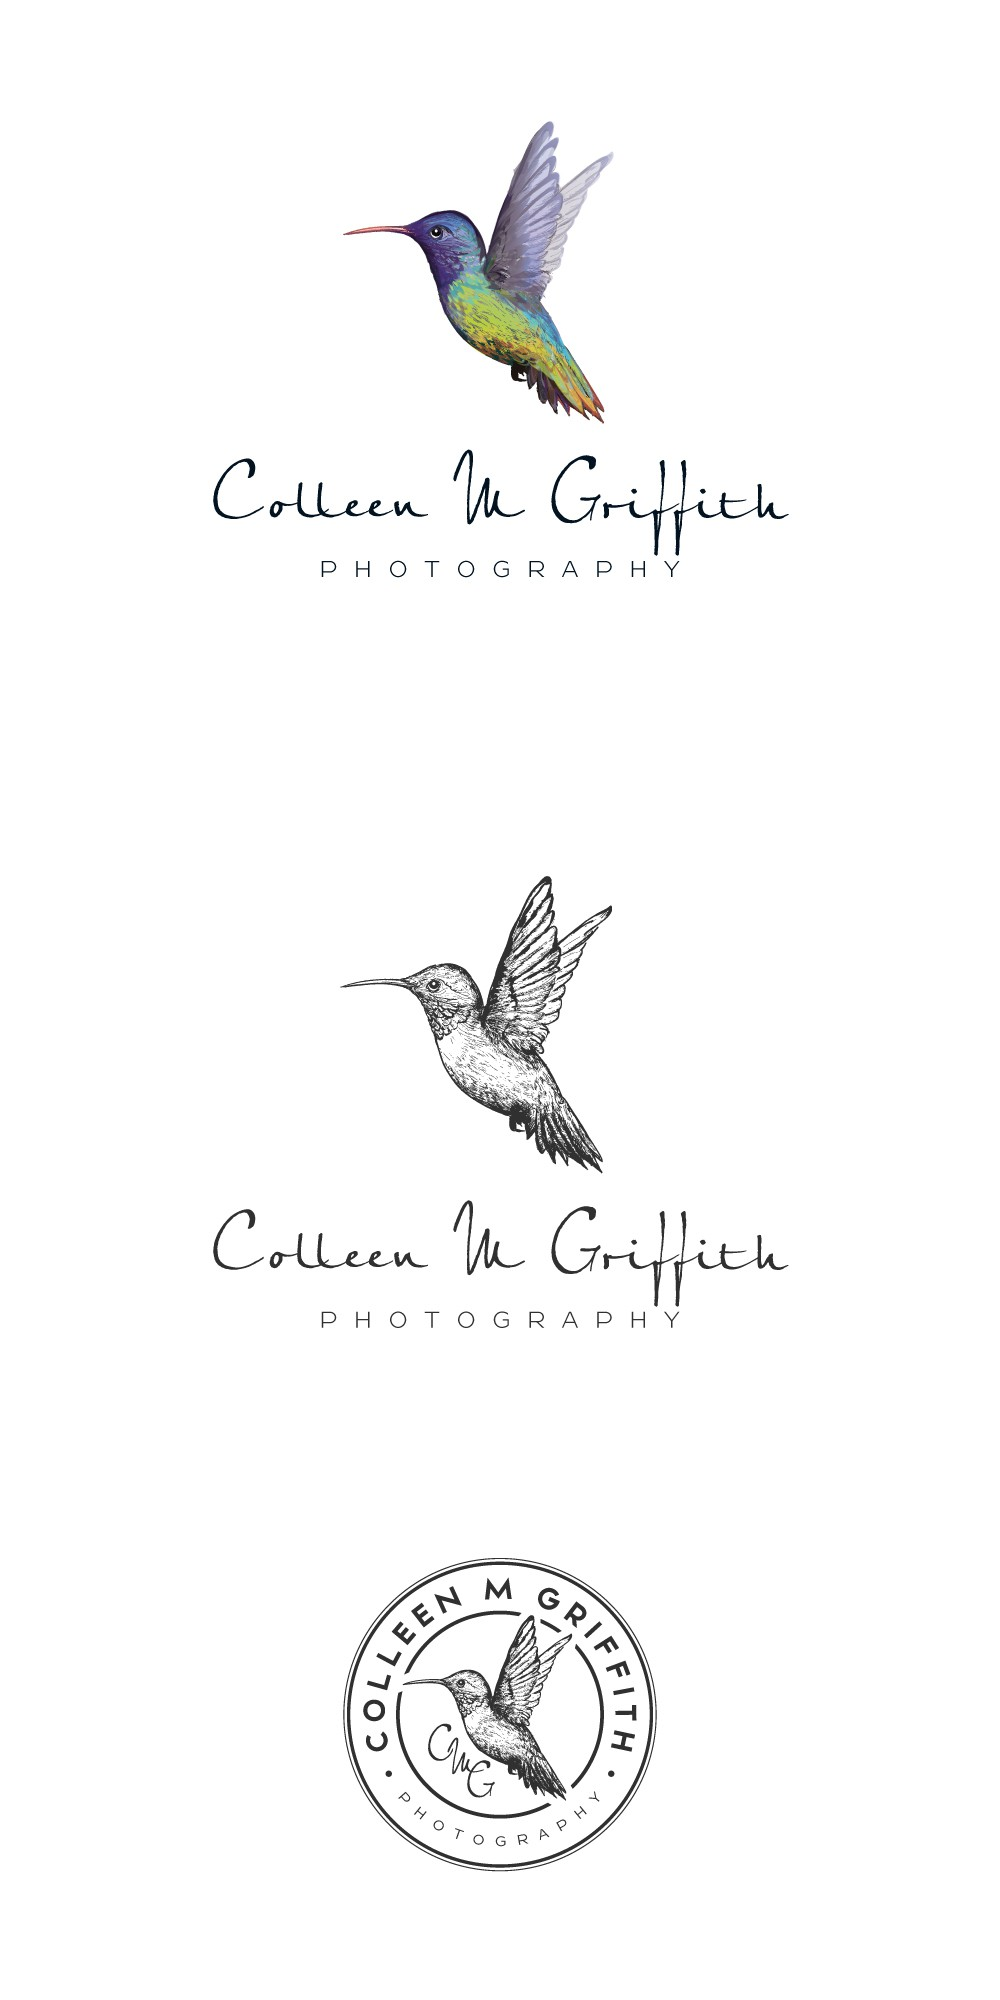 Business Card Design for Colleen M Griffith Photography and Productions